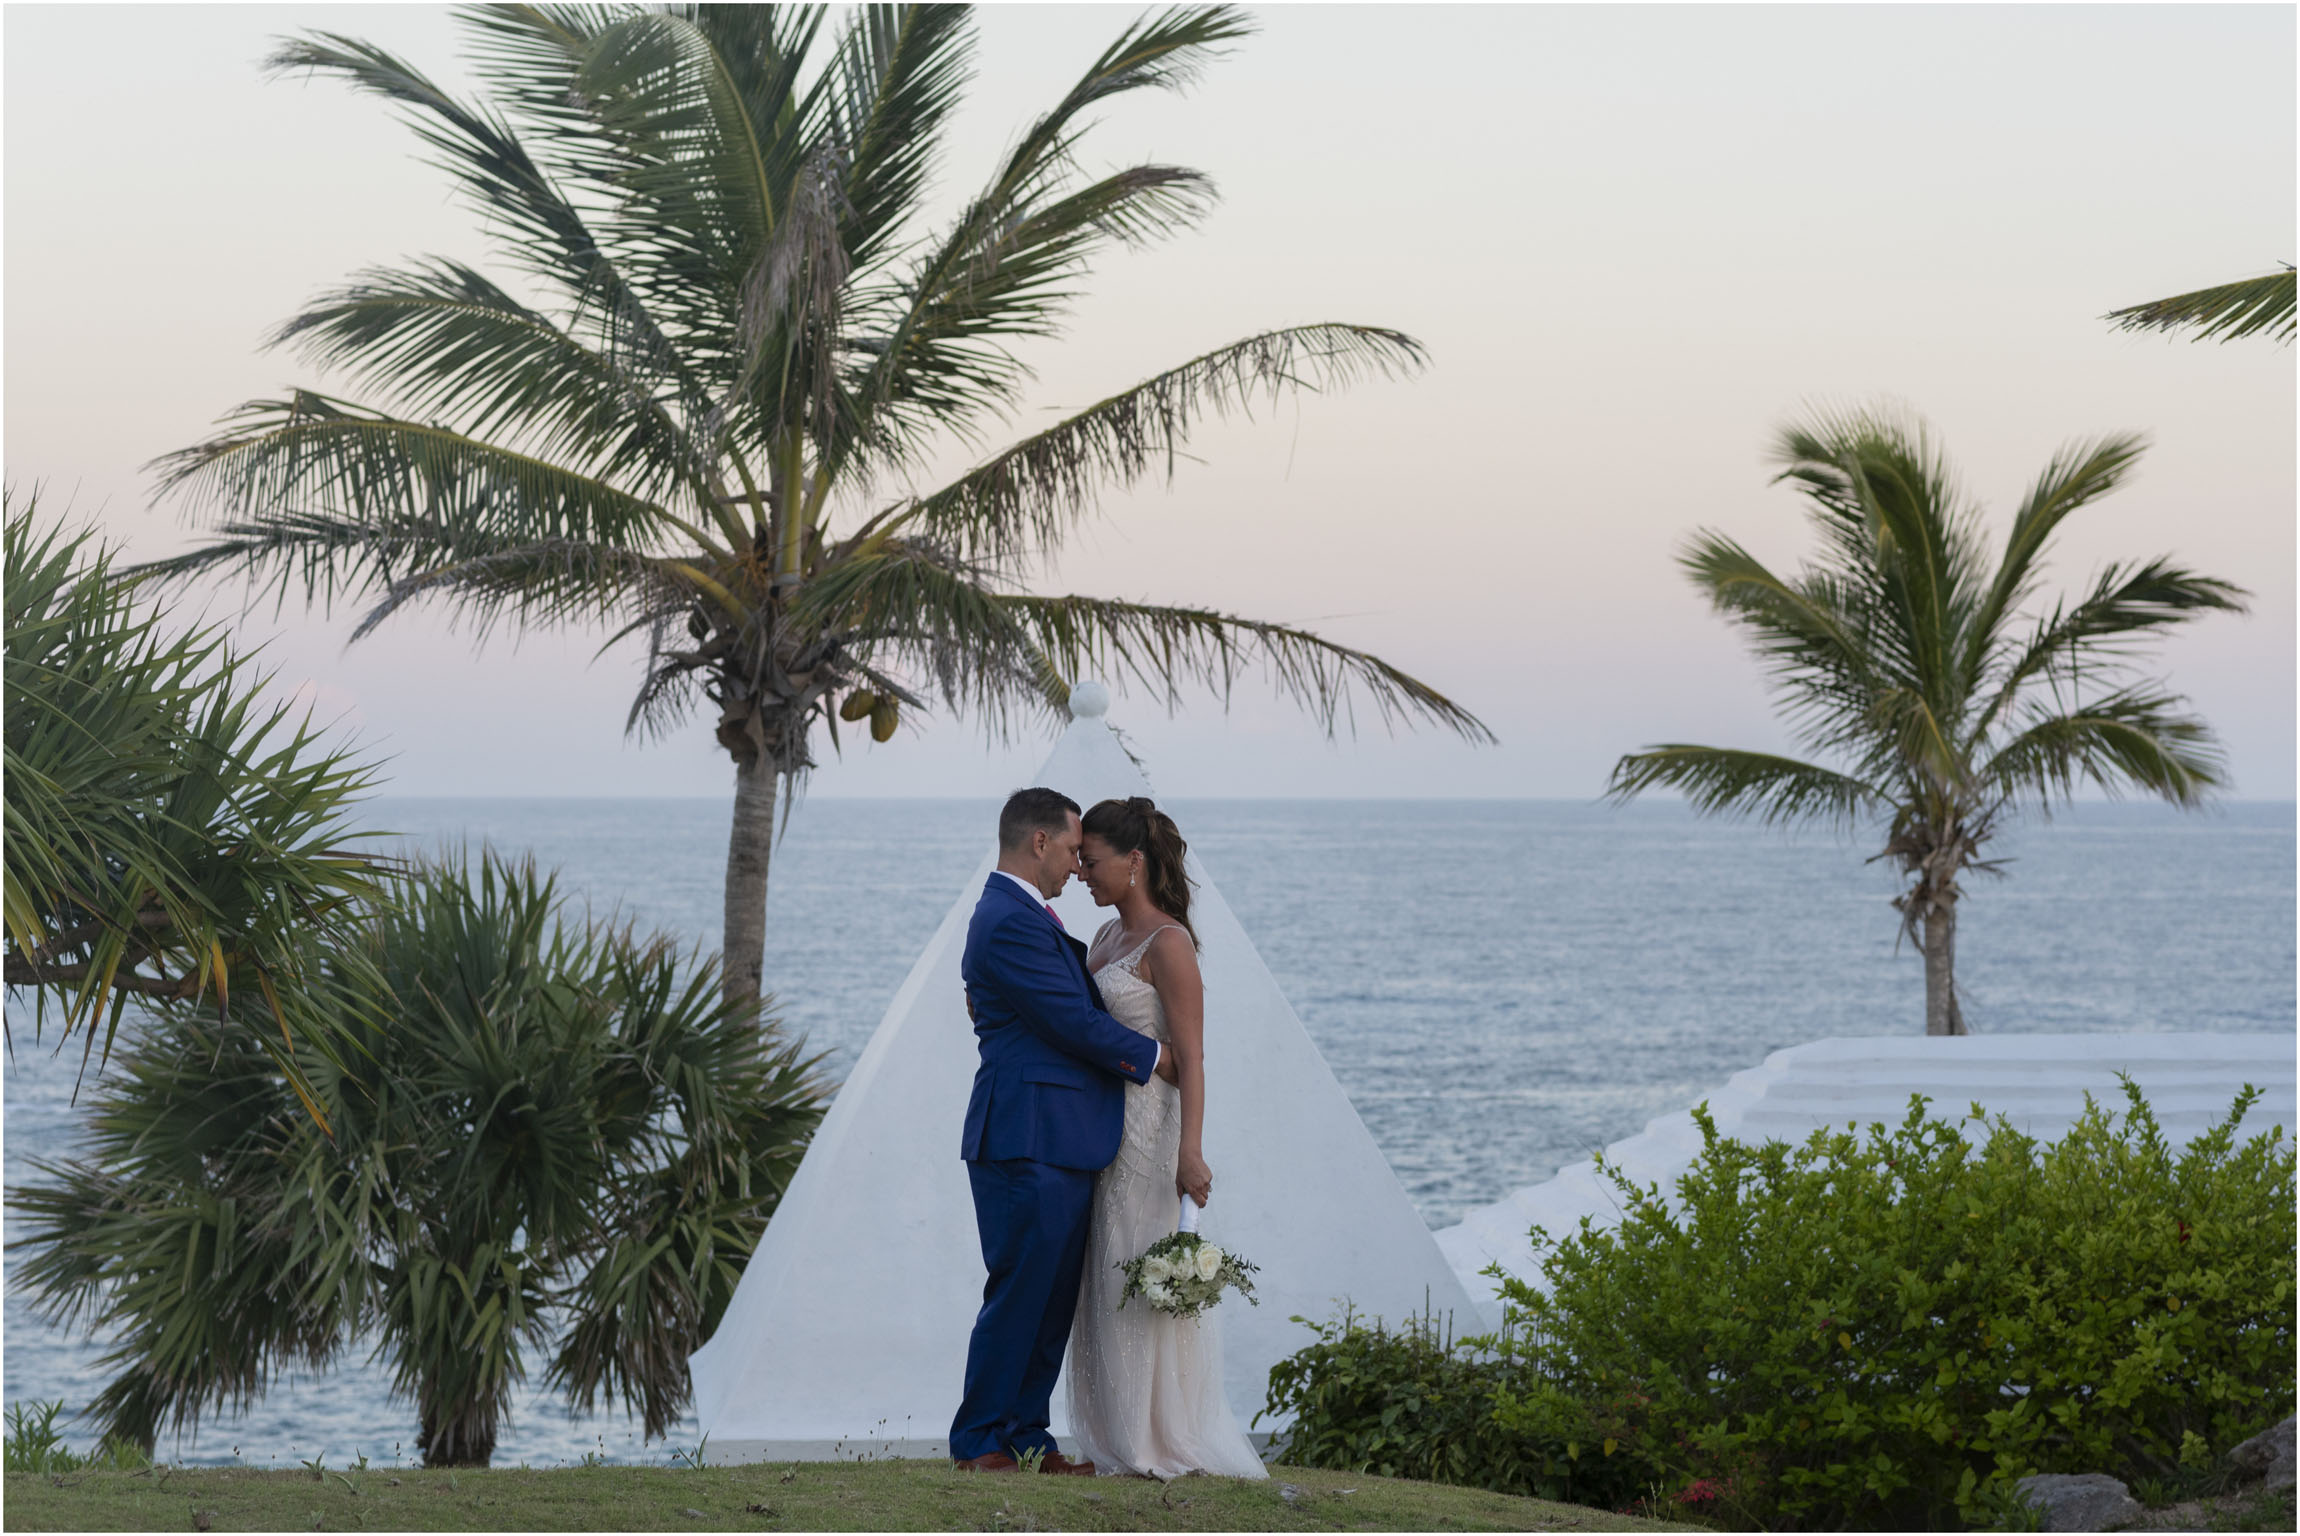 ©FianderFoto_Catherine_Kenny_Coral Beach Wedding_188.jpg